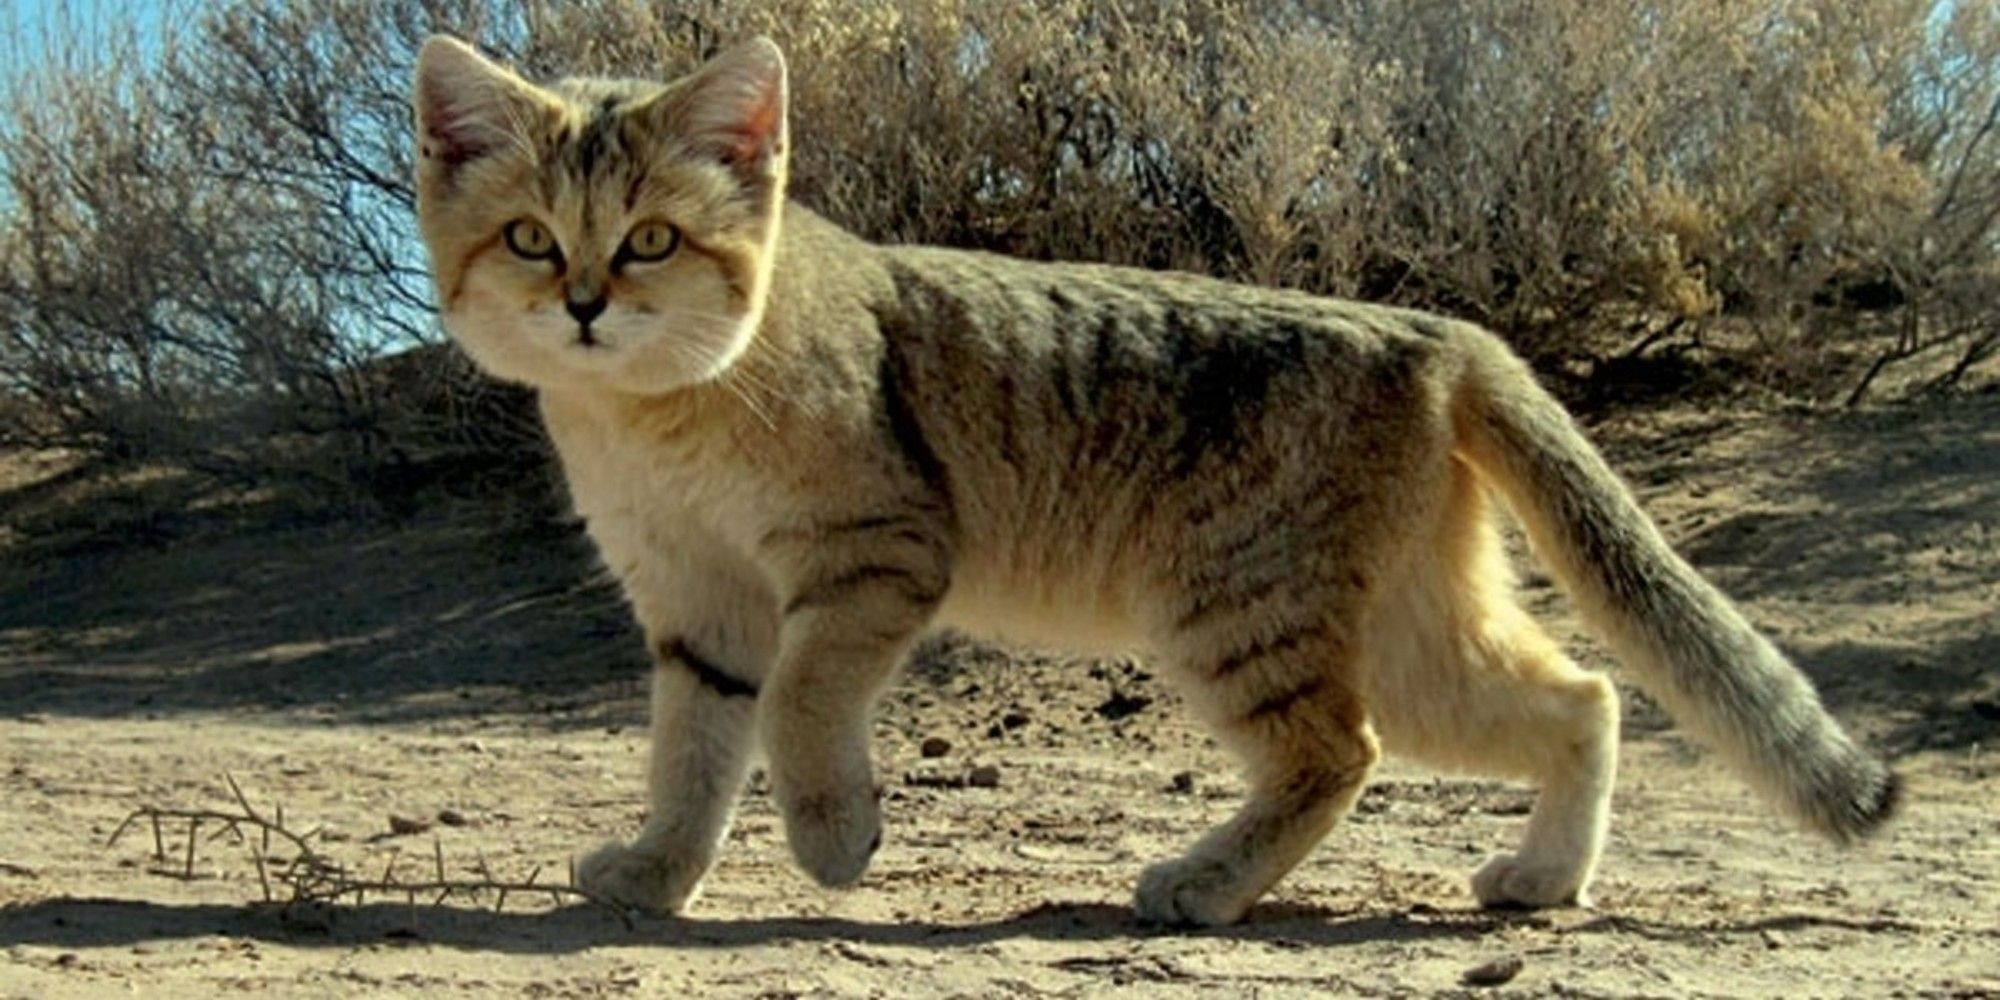 Arabian Sand Cat Spotted for First Time in a Decade Rare